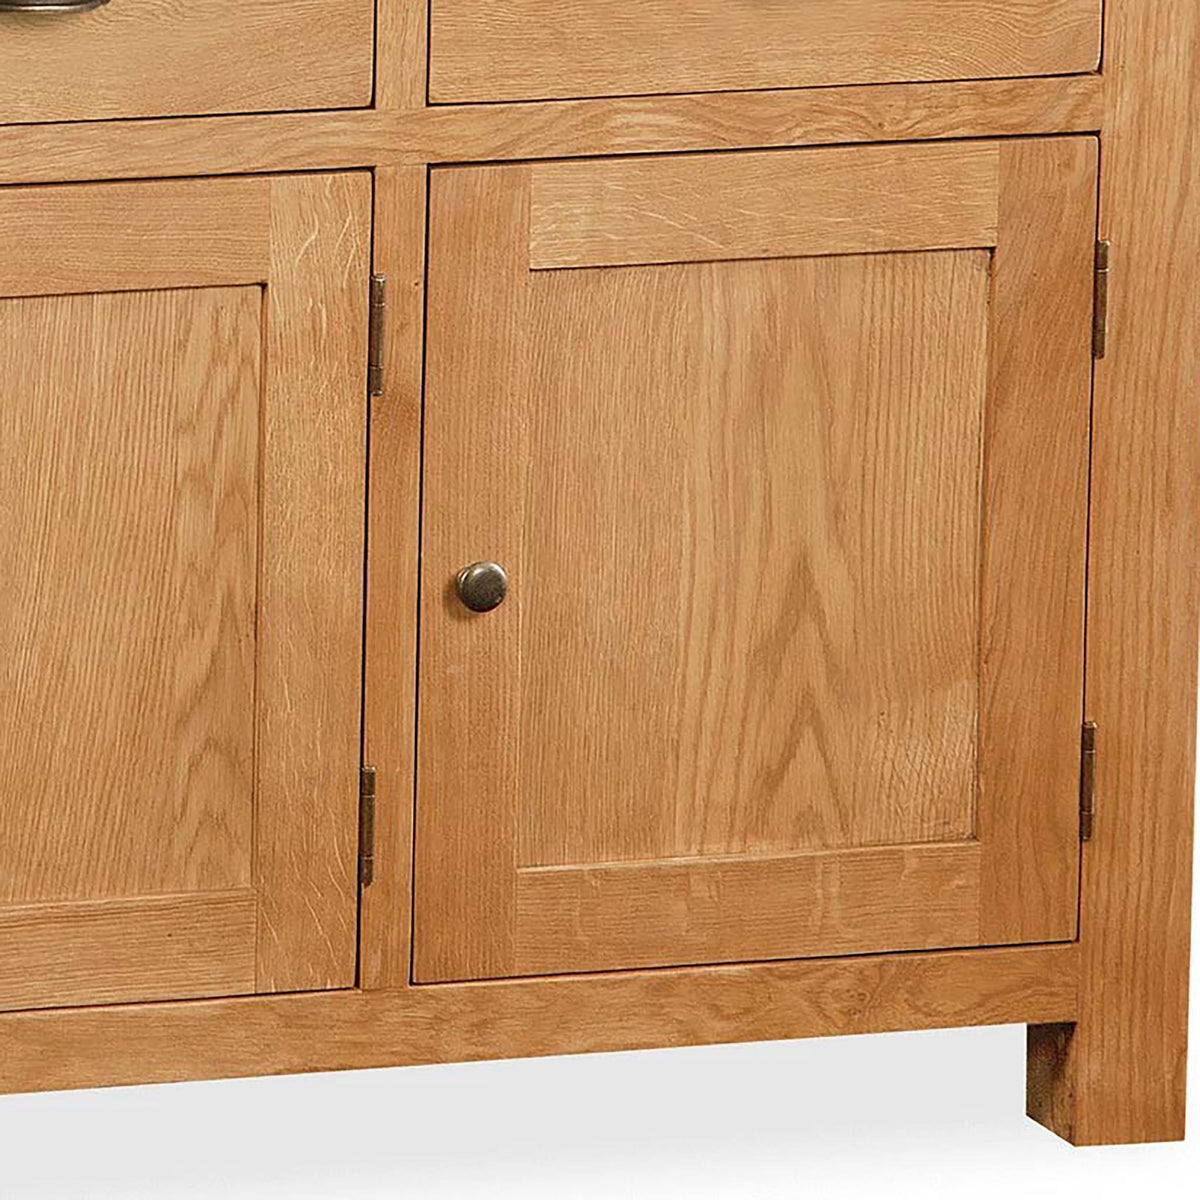 Sidmouth Oak Extra Large Sideboard - Close Up of Cupboard Door